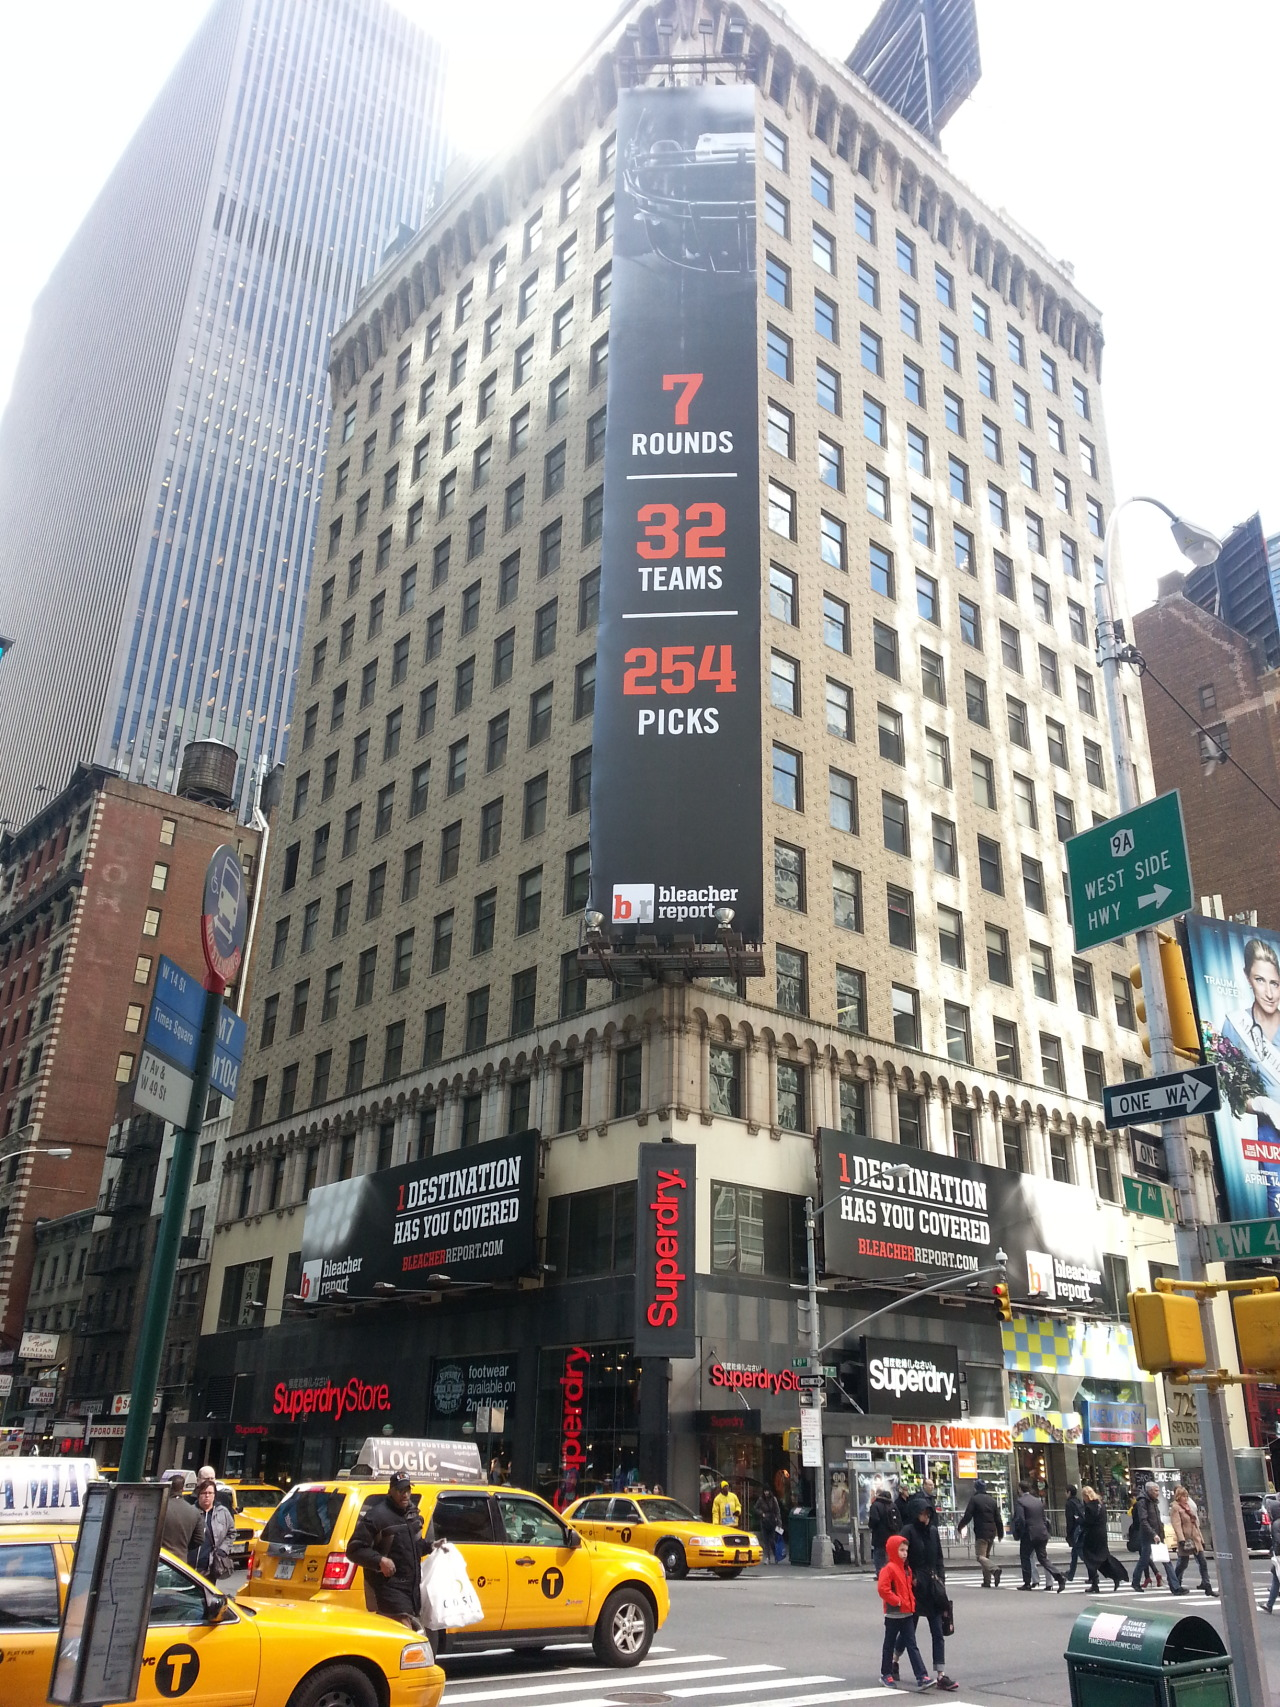 Bleacher Report used ADstruc to secure this huge 3-piece billboard promoting their coverage of this week's NFL Draft at Radio City Music Hall.